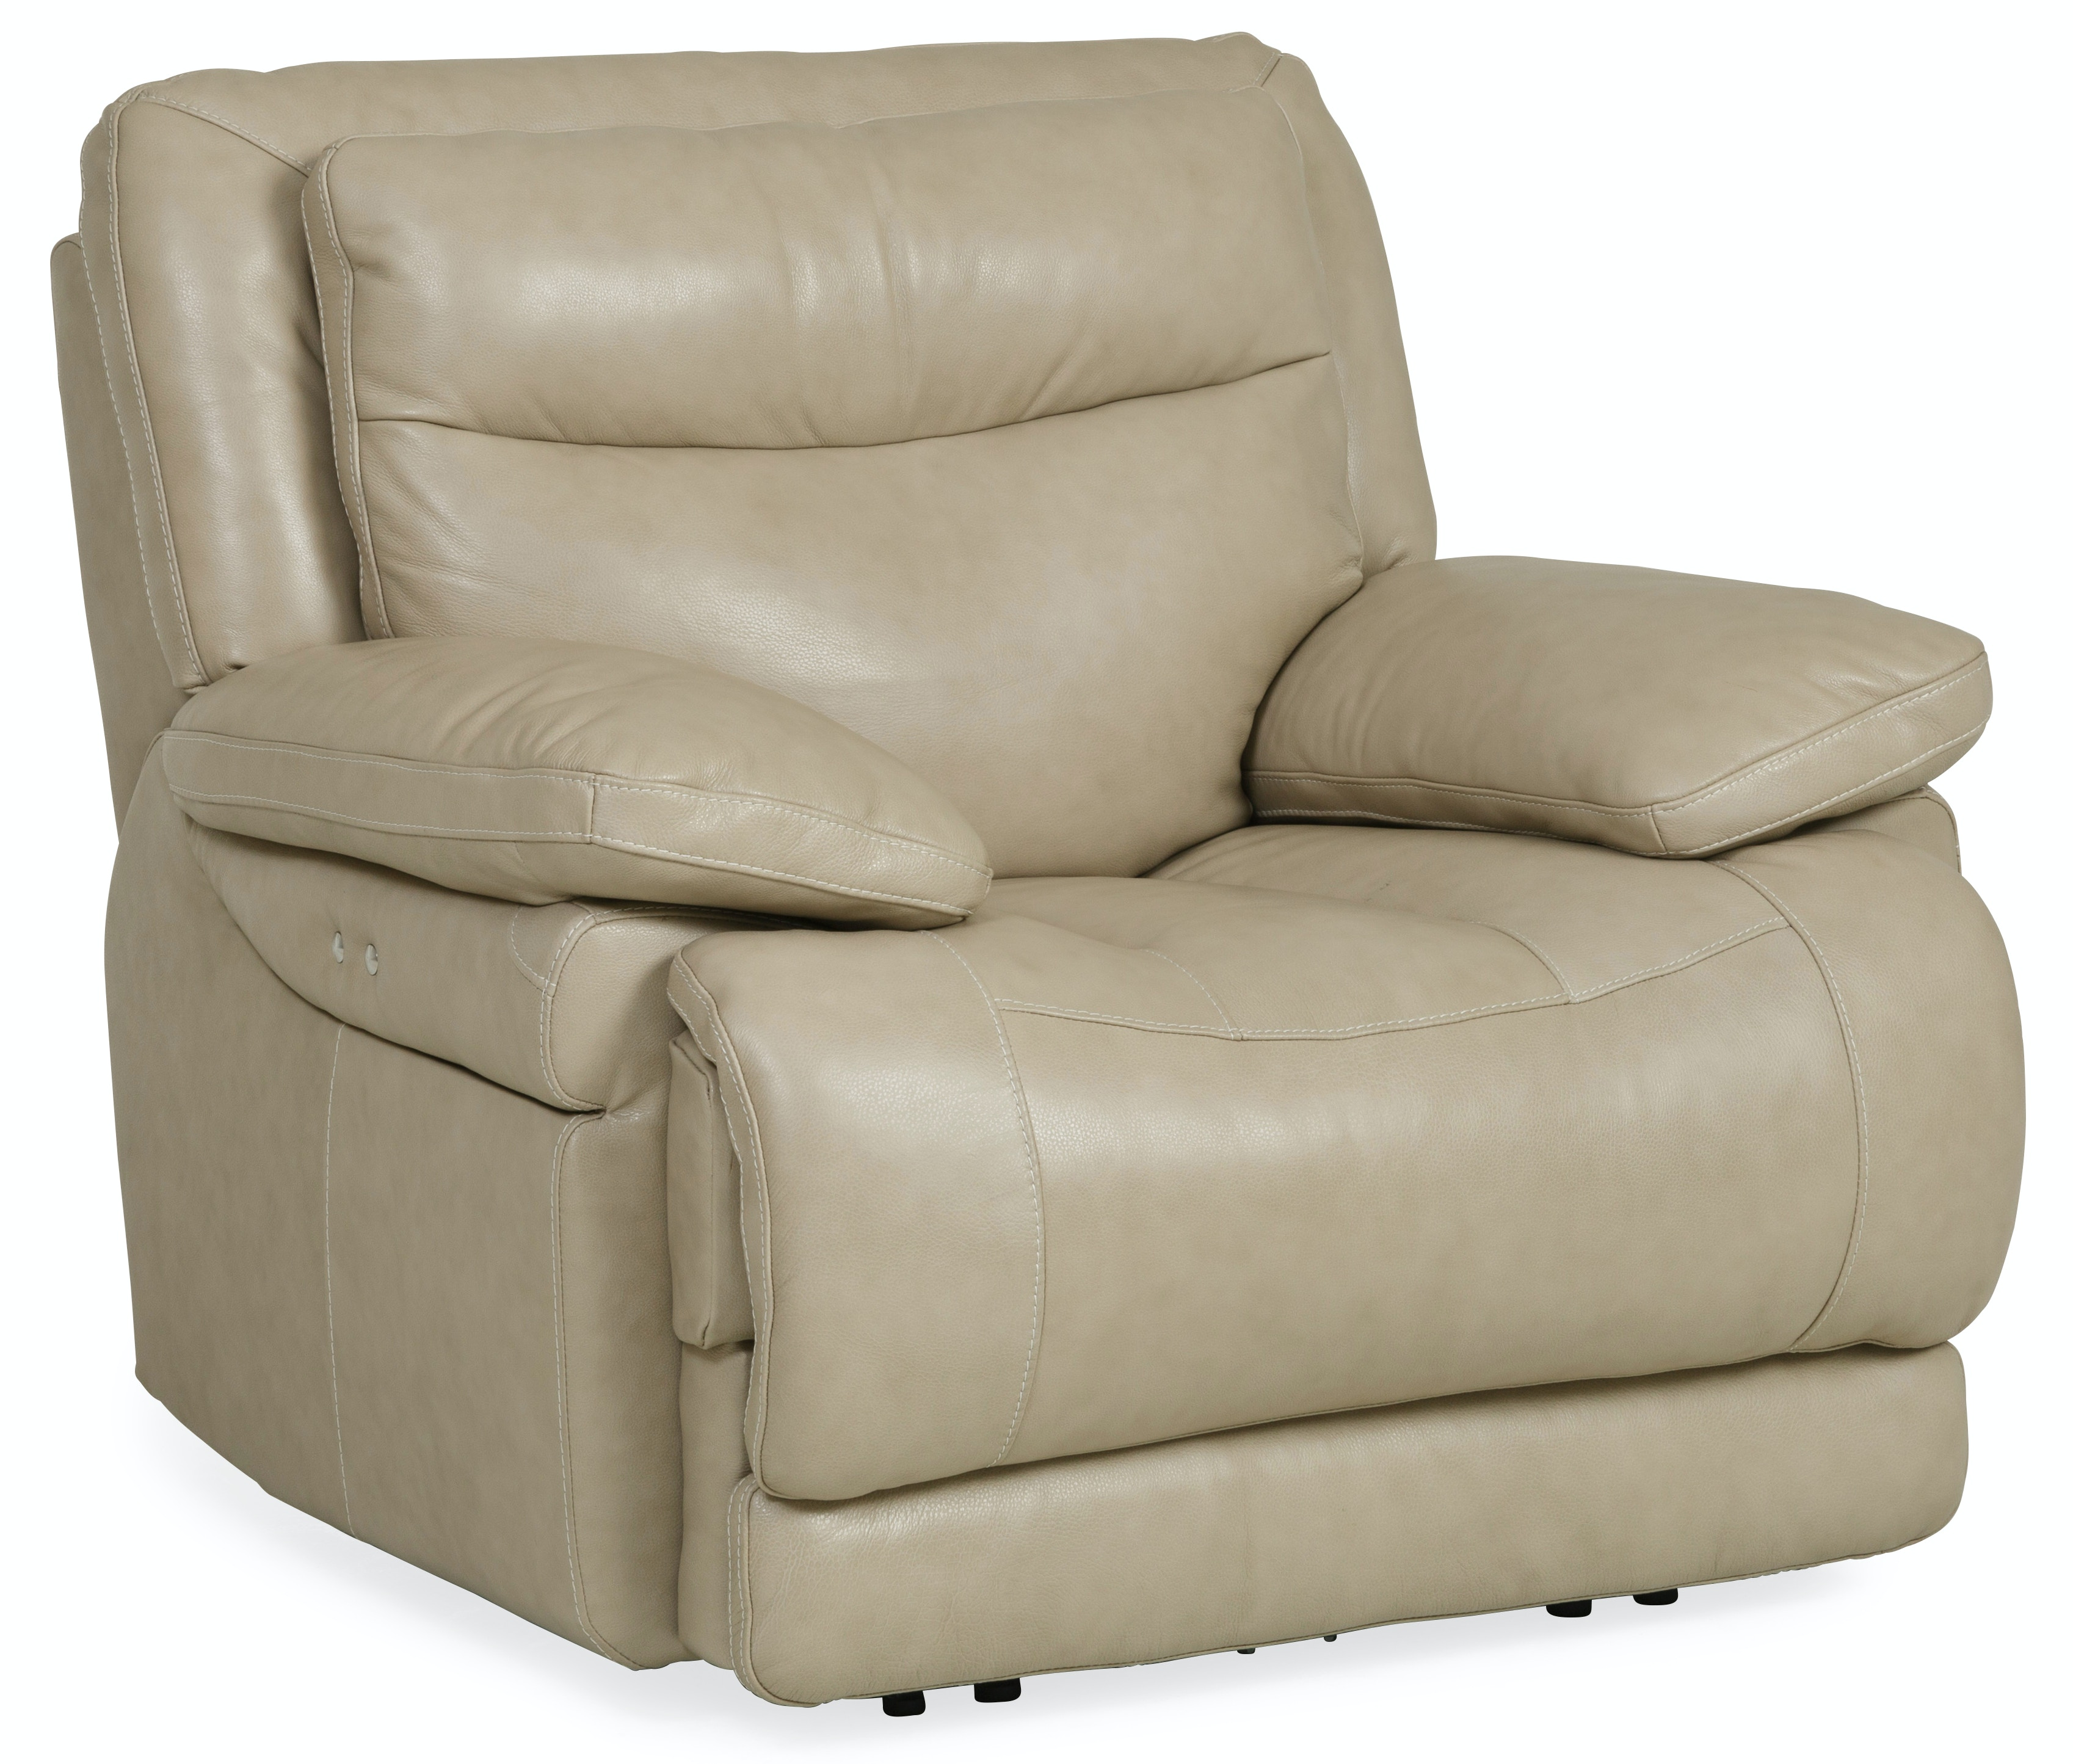 Longhorn Leather Power Recliner   WHEAT ST:436975